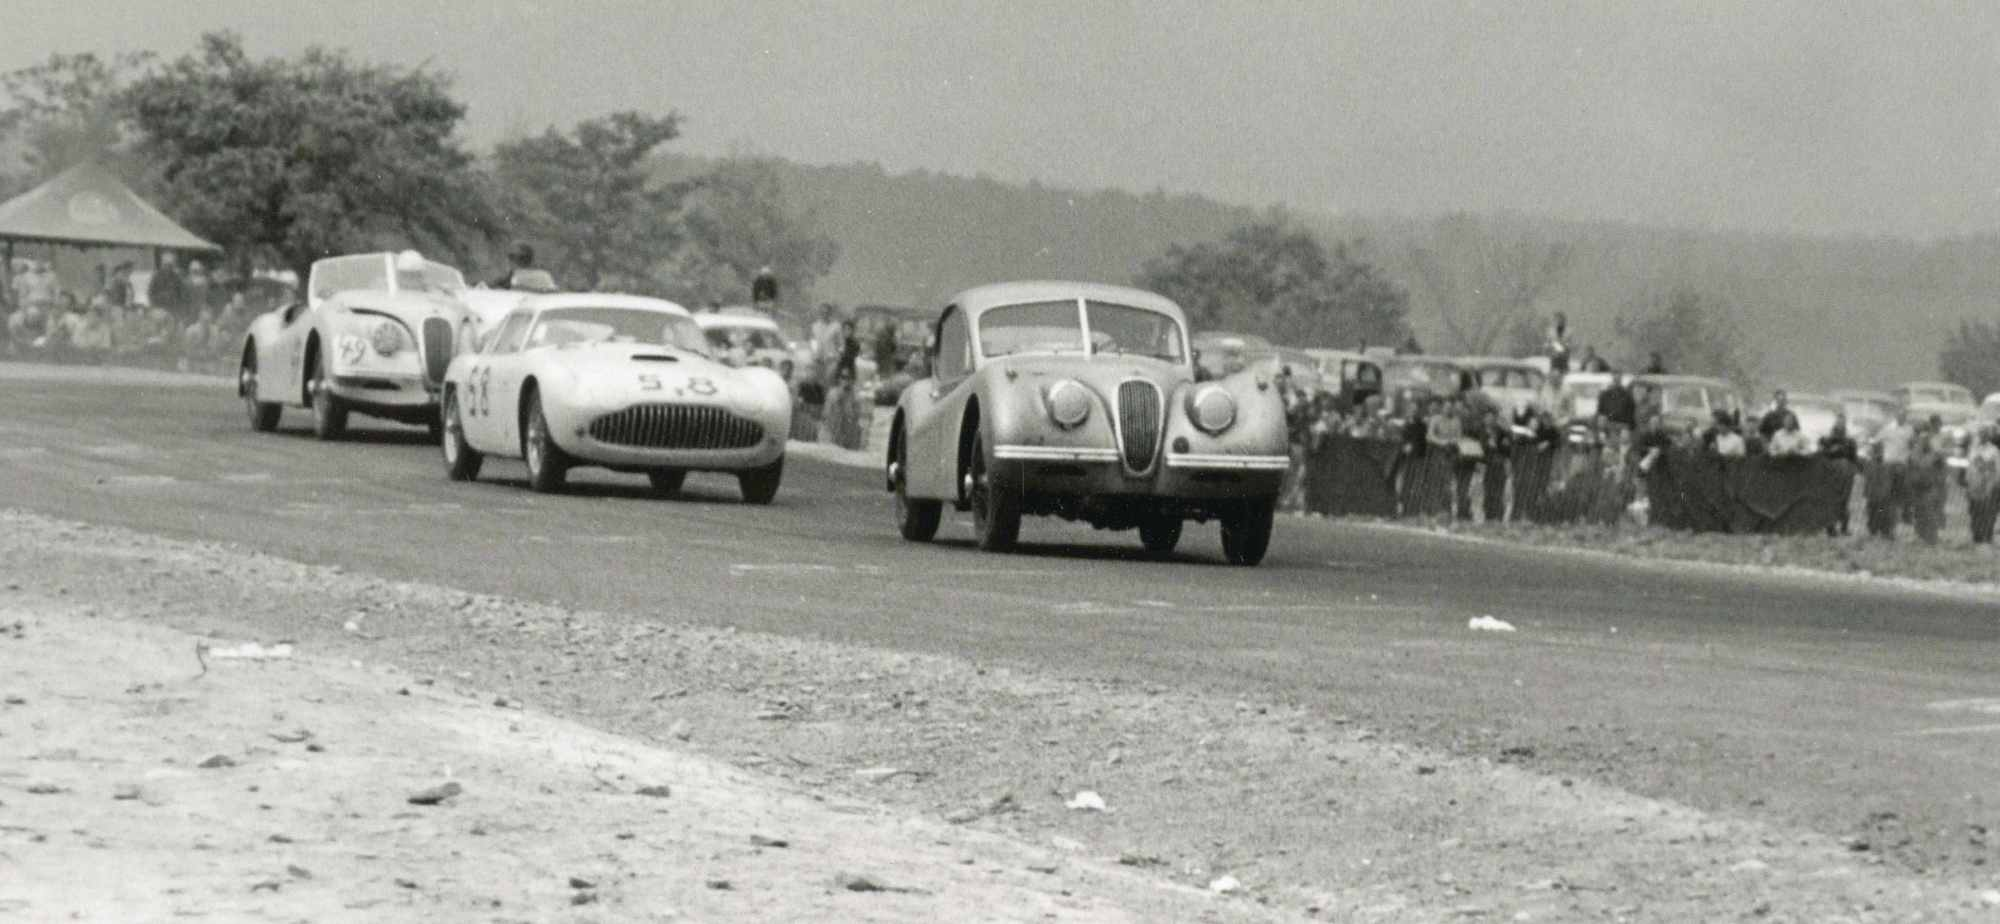 hight resolution of  last turn before start finish line at the1953 watkins glen grand prix the 90 jaguar xk 120 of gled derujinski leads the siata of otto linton 58 and